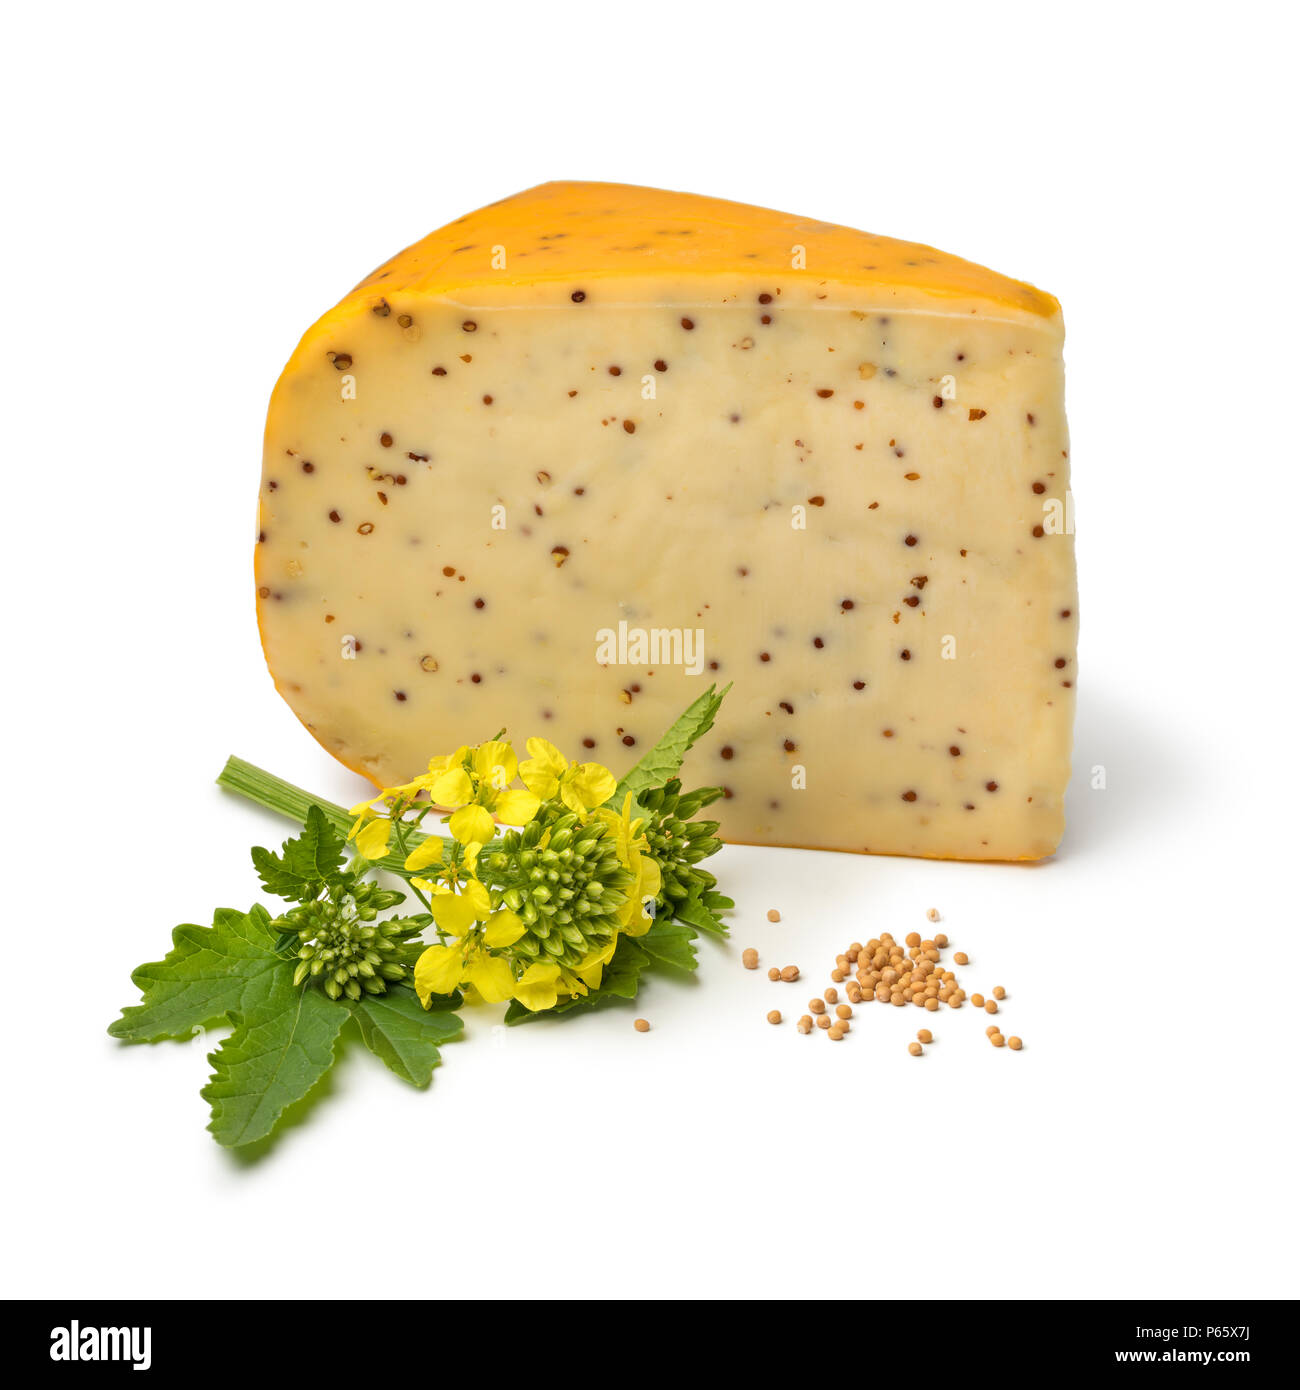 Dutch young mustard cheese with flower and seeds isolated on white background - Stock Image